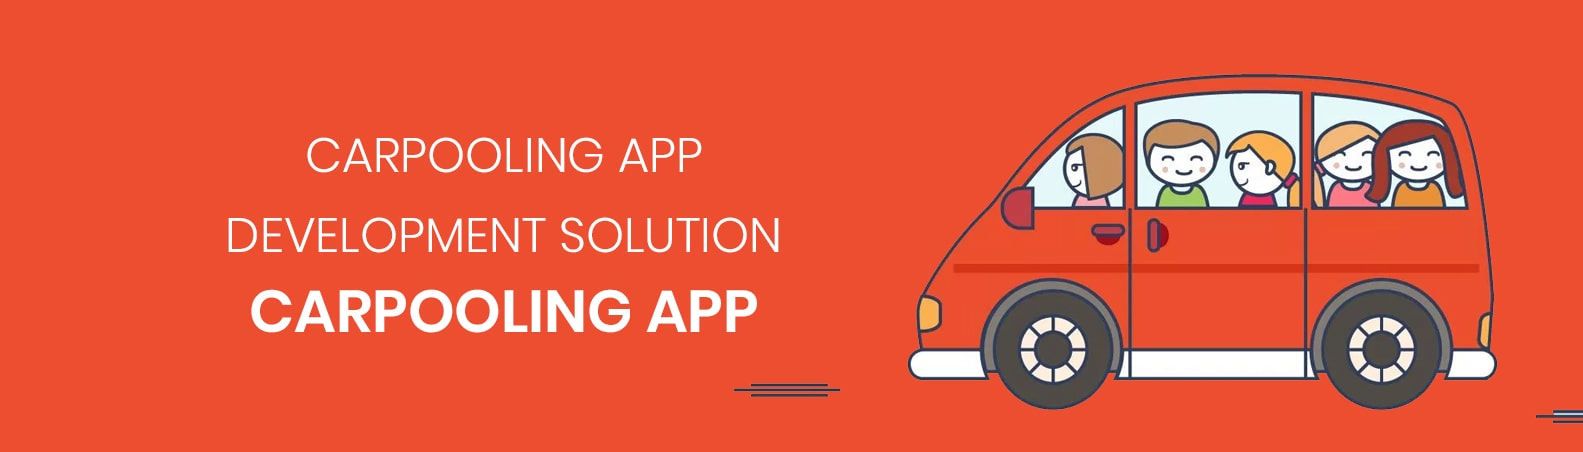 Carpooling App Development Solution | Carpooling App